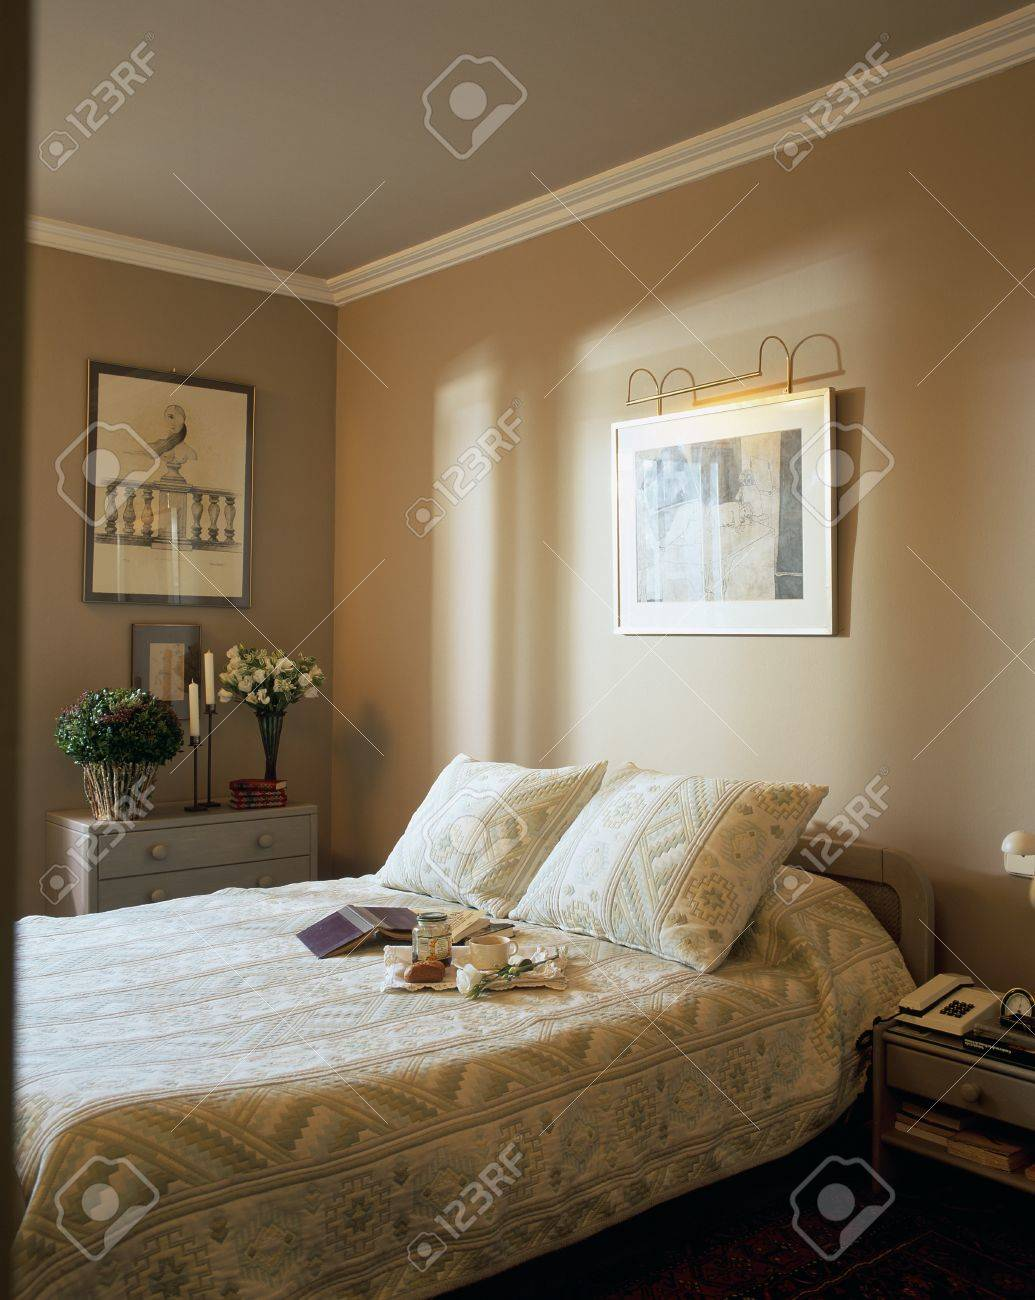 stock photo view of a cozy bedroom